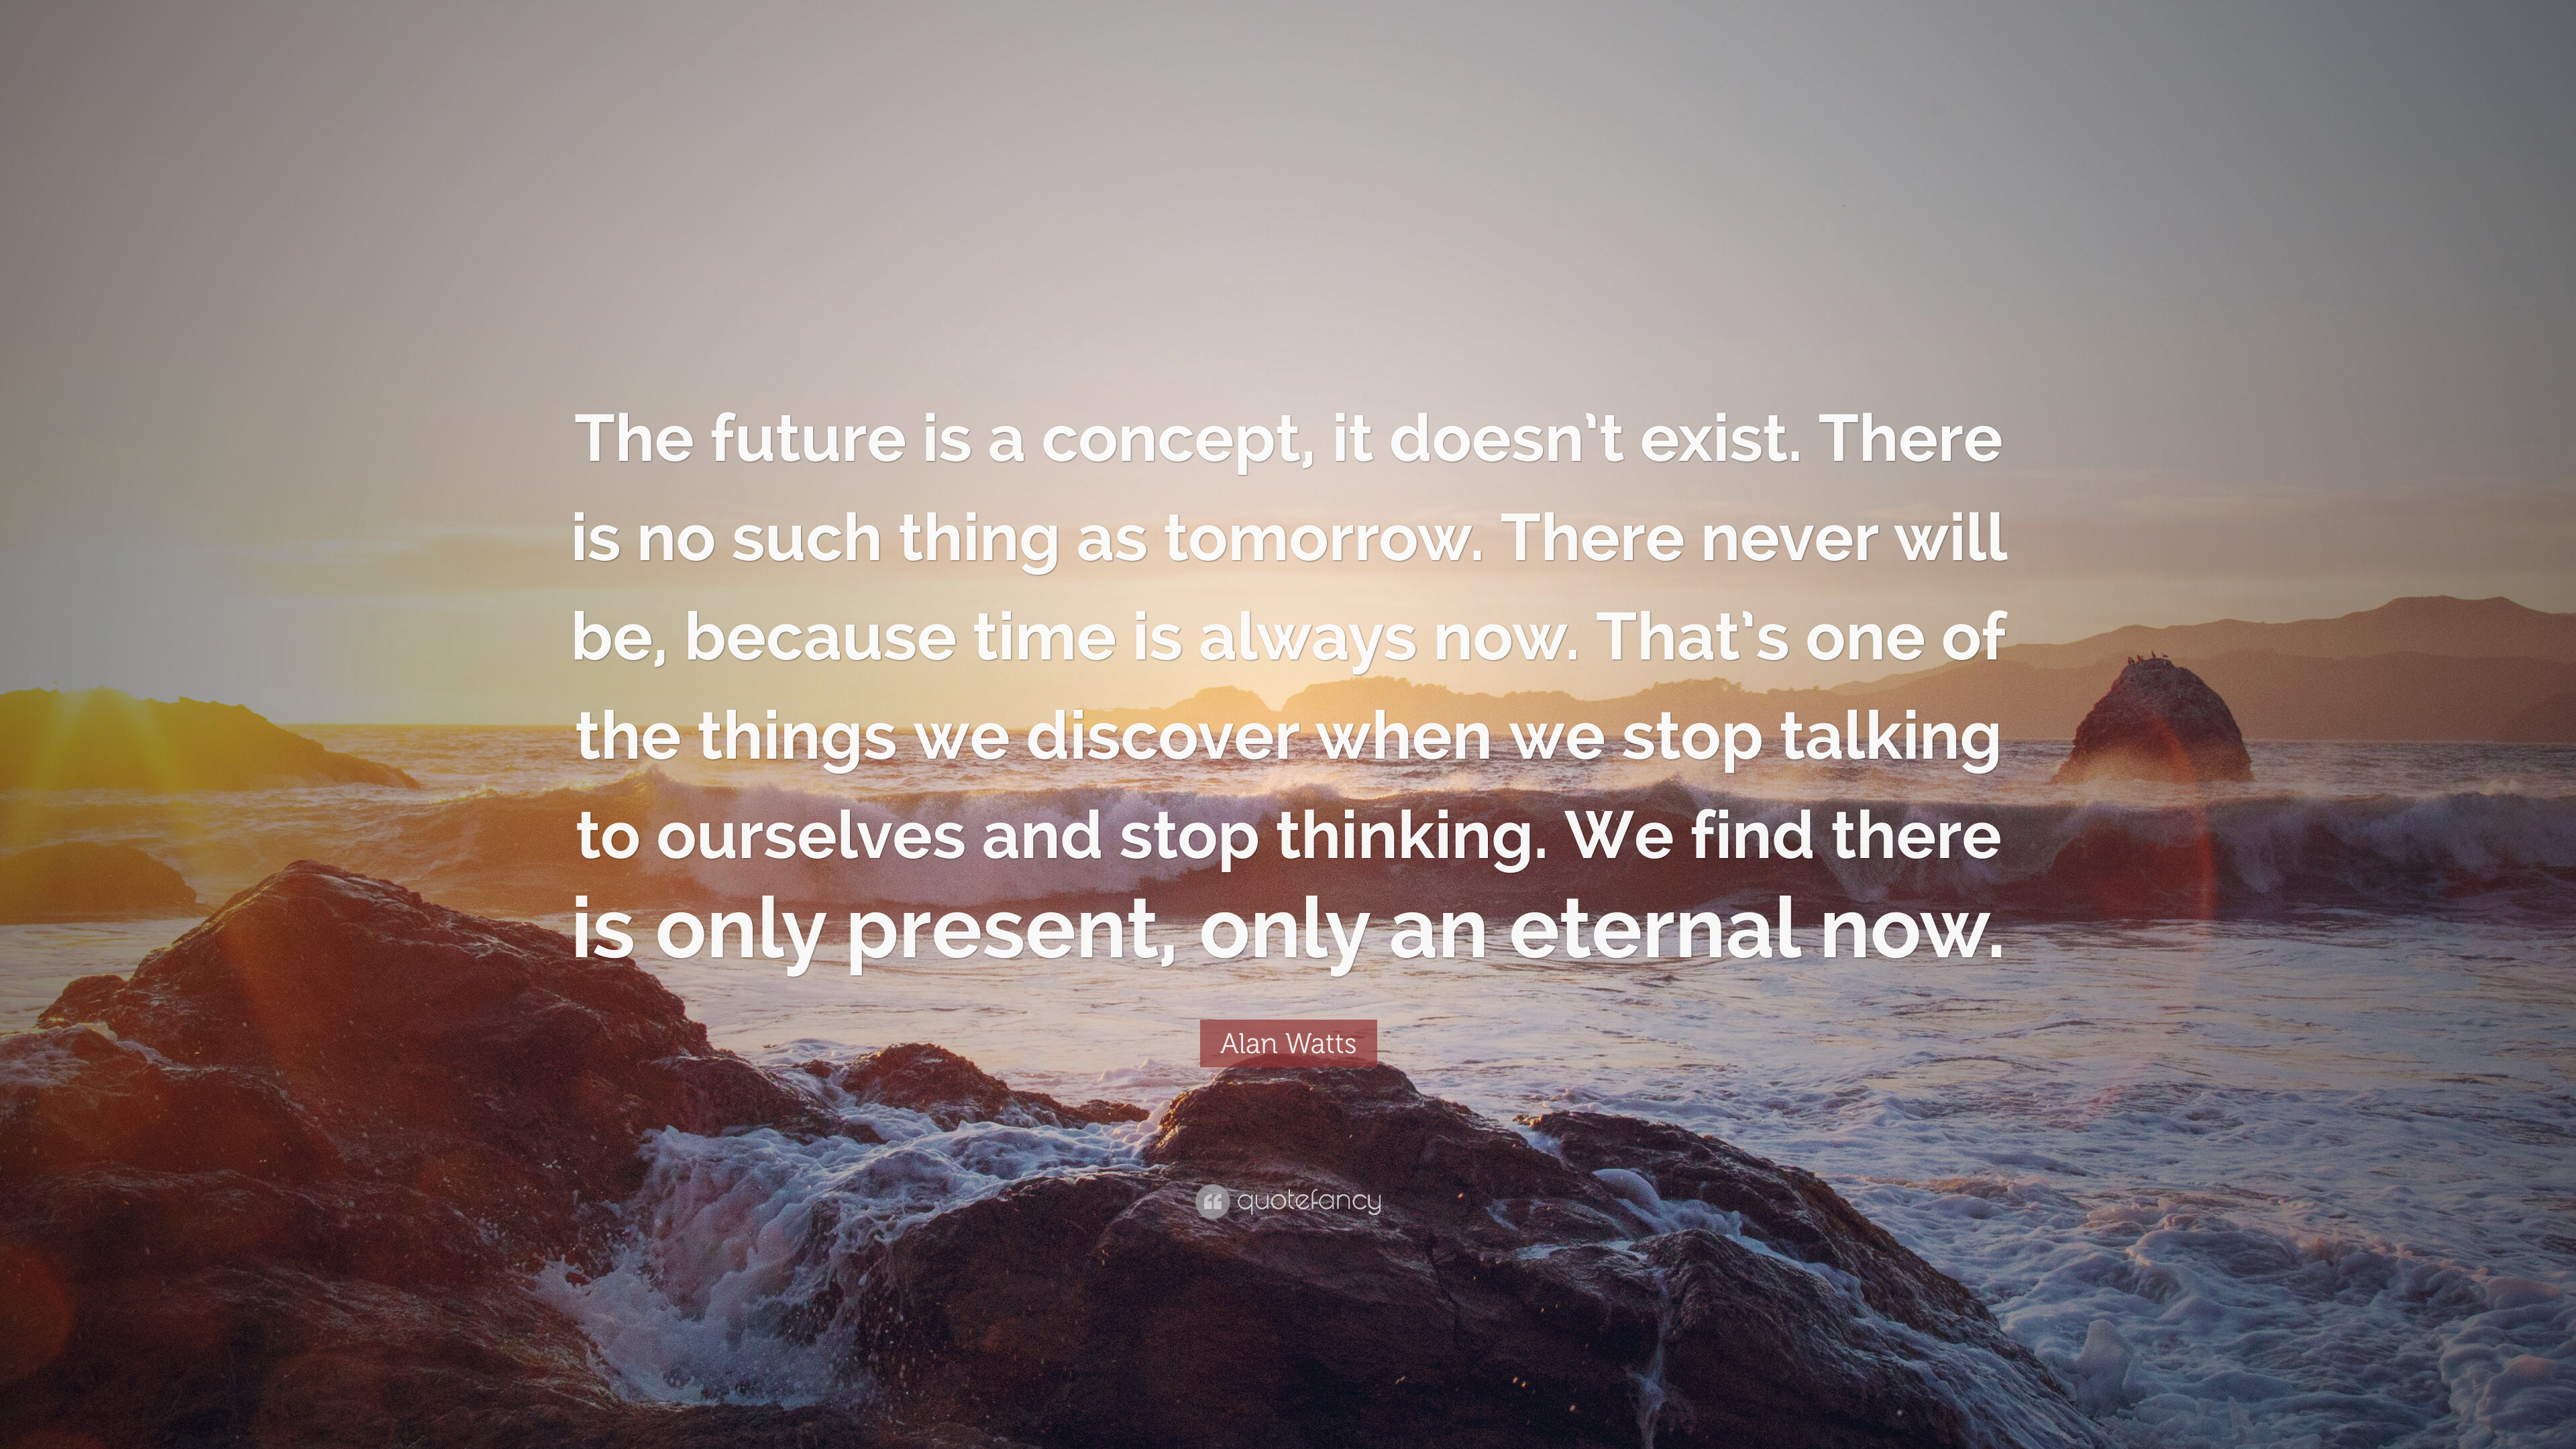 Alan Watts Quote   U201cthe Future Is A Concept  It Doesn U2019t